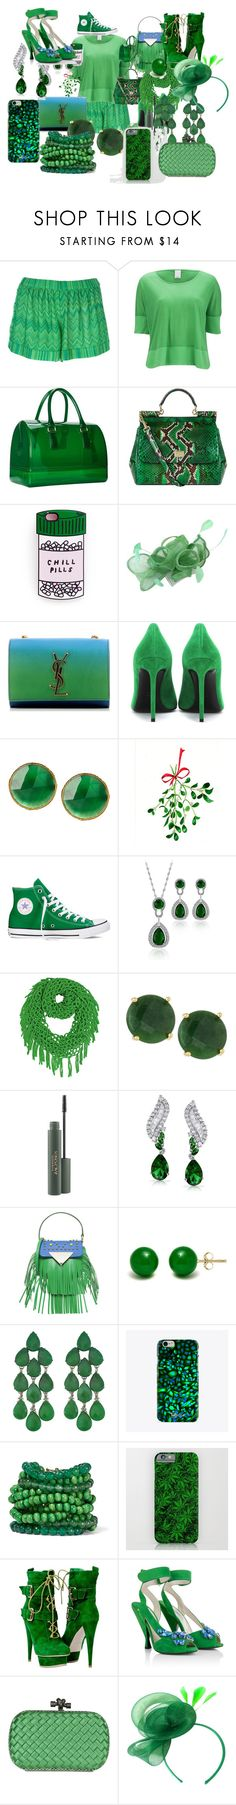 """A green chill pill"" by jordanbond55 ❤ liked on Polyvore featuring Missoni, Vero Moda, Furla, Dolce&Gabbana, Yves Saint Laurent, Converse, Panacea, Bling Jewelry, Sara Battaglia and Pori"